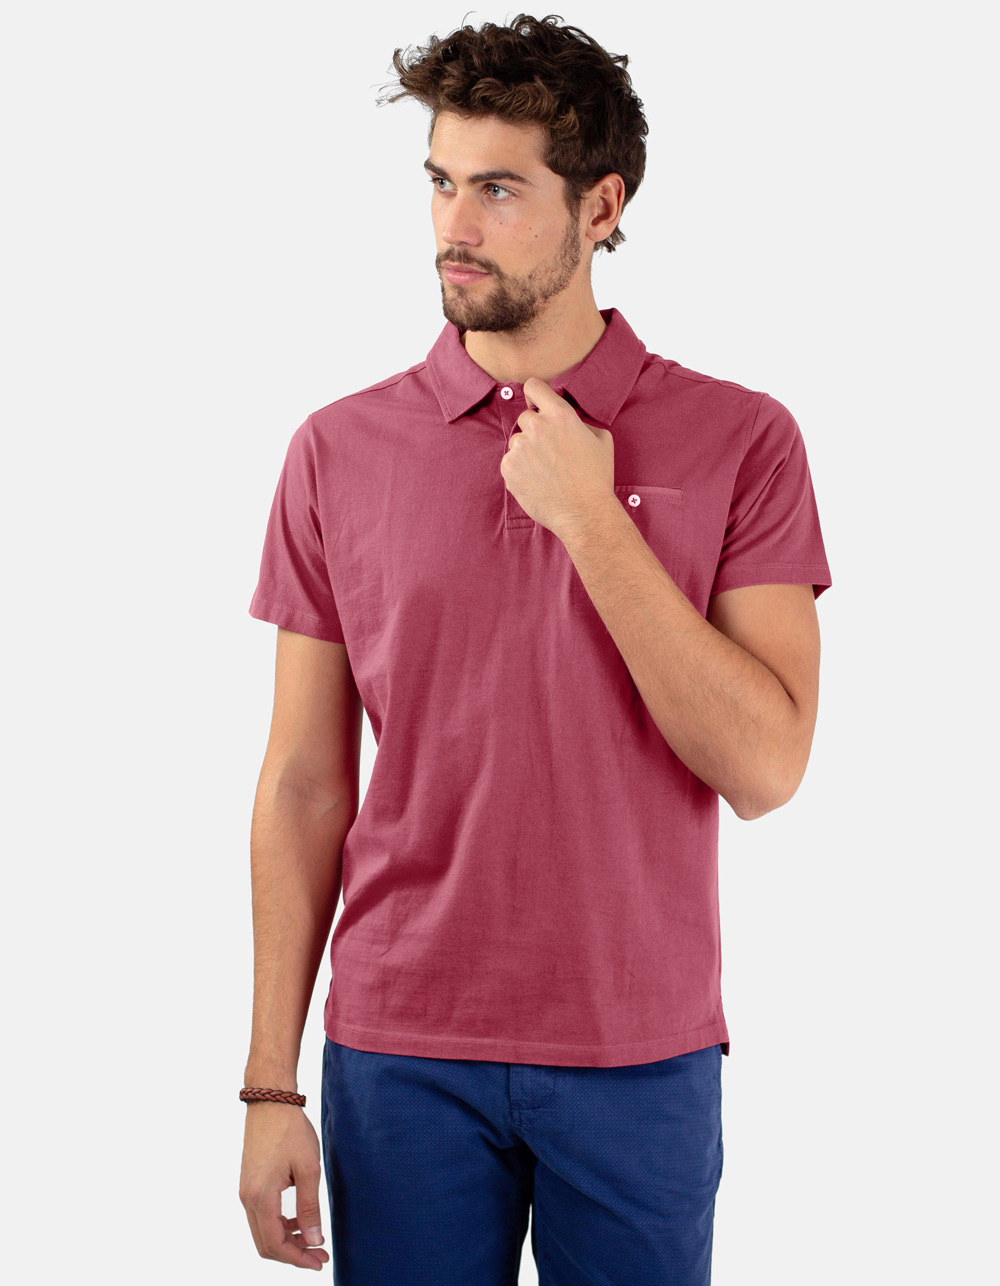 Maroon pocket polo shirt